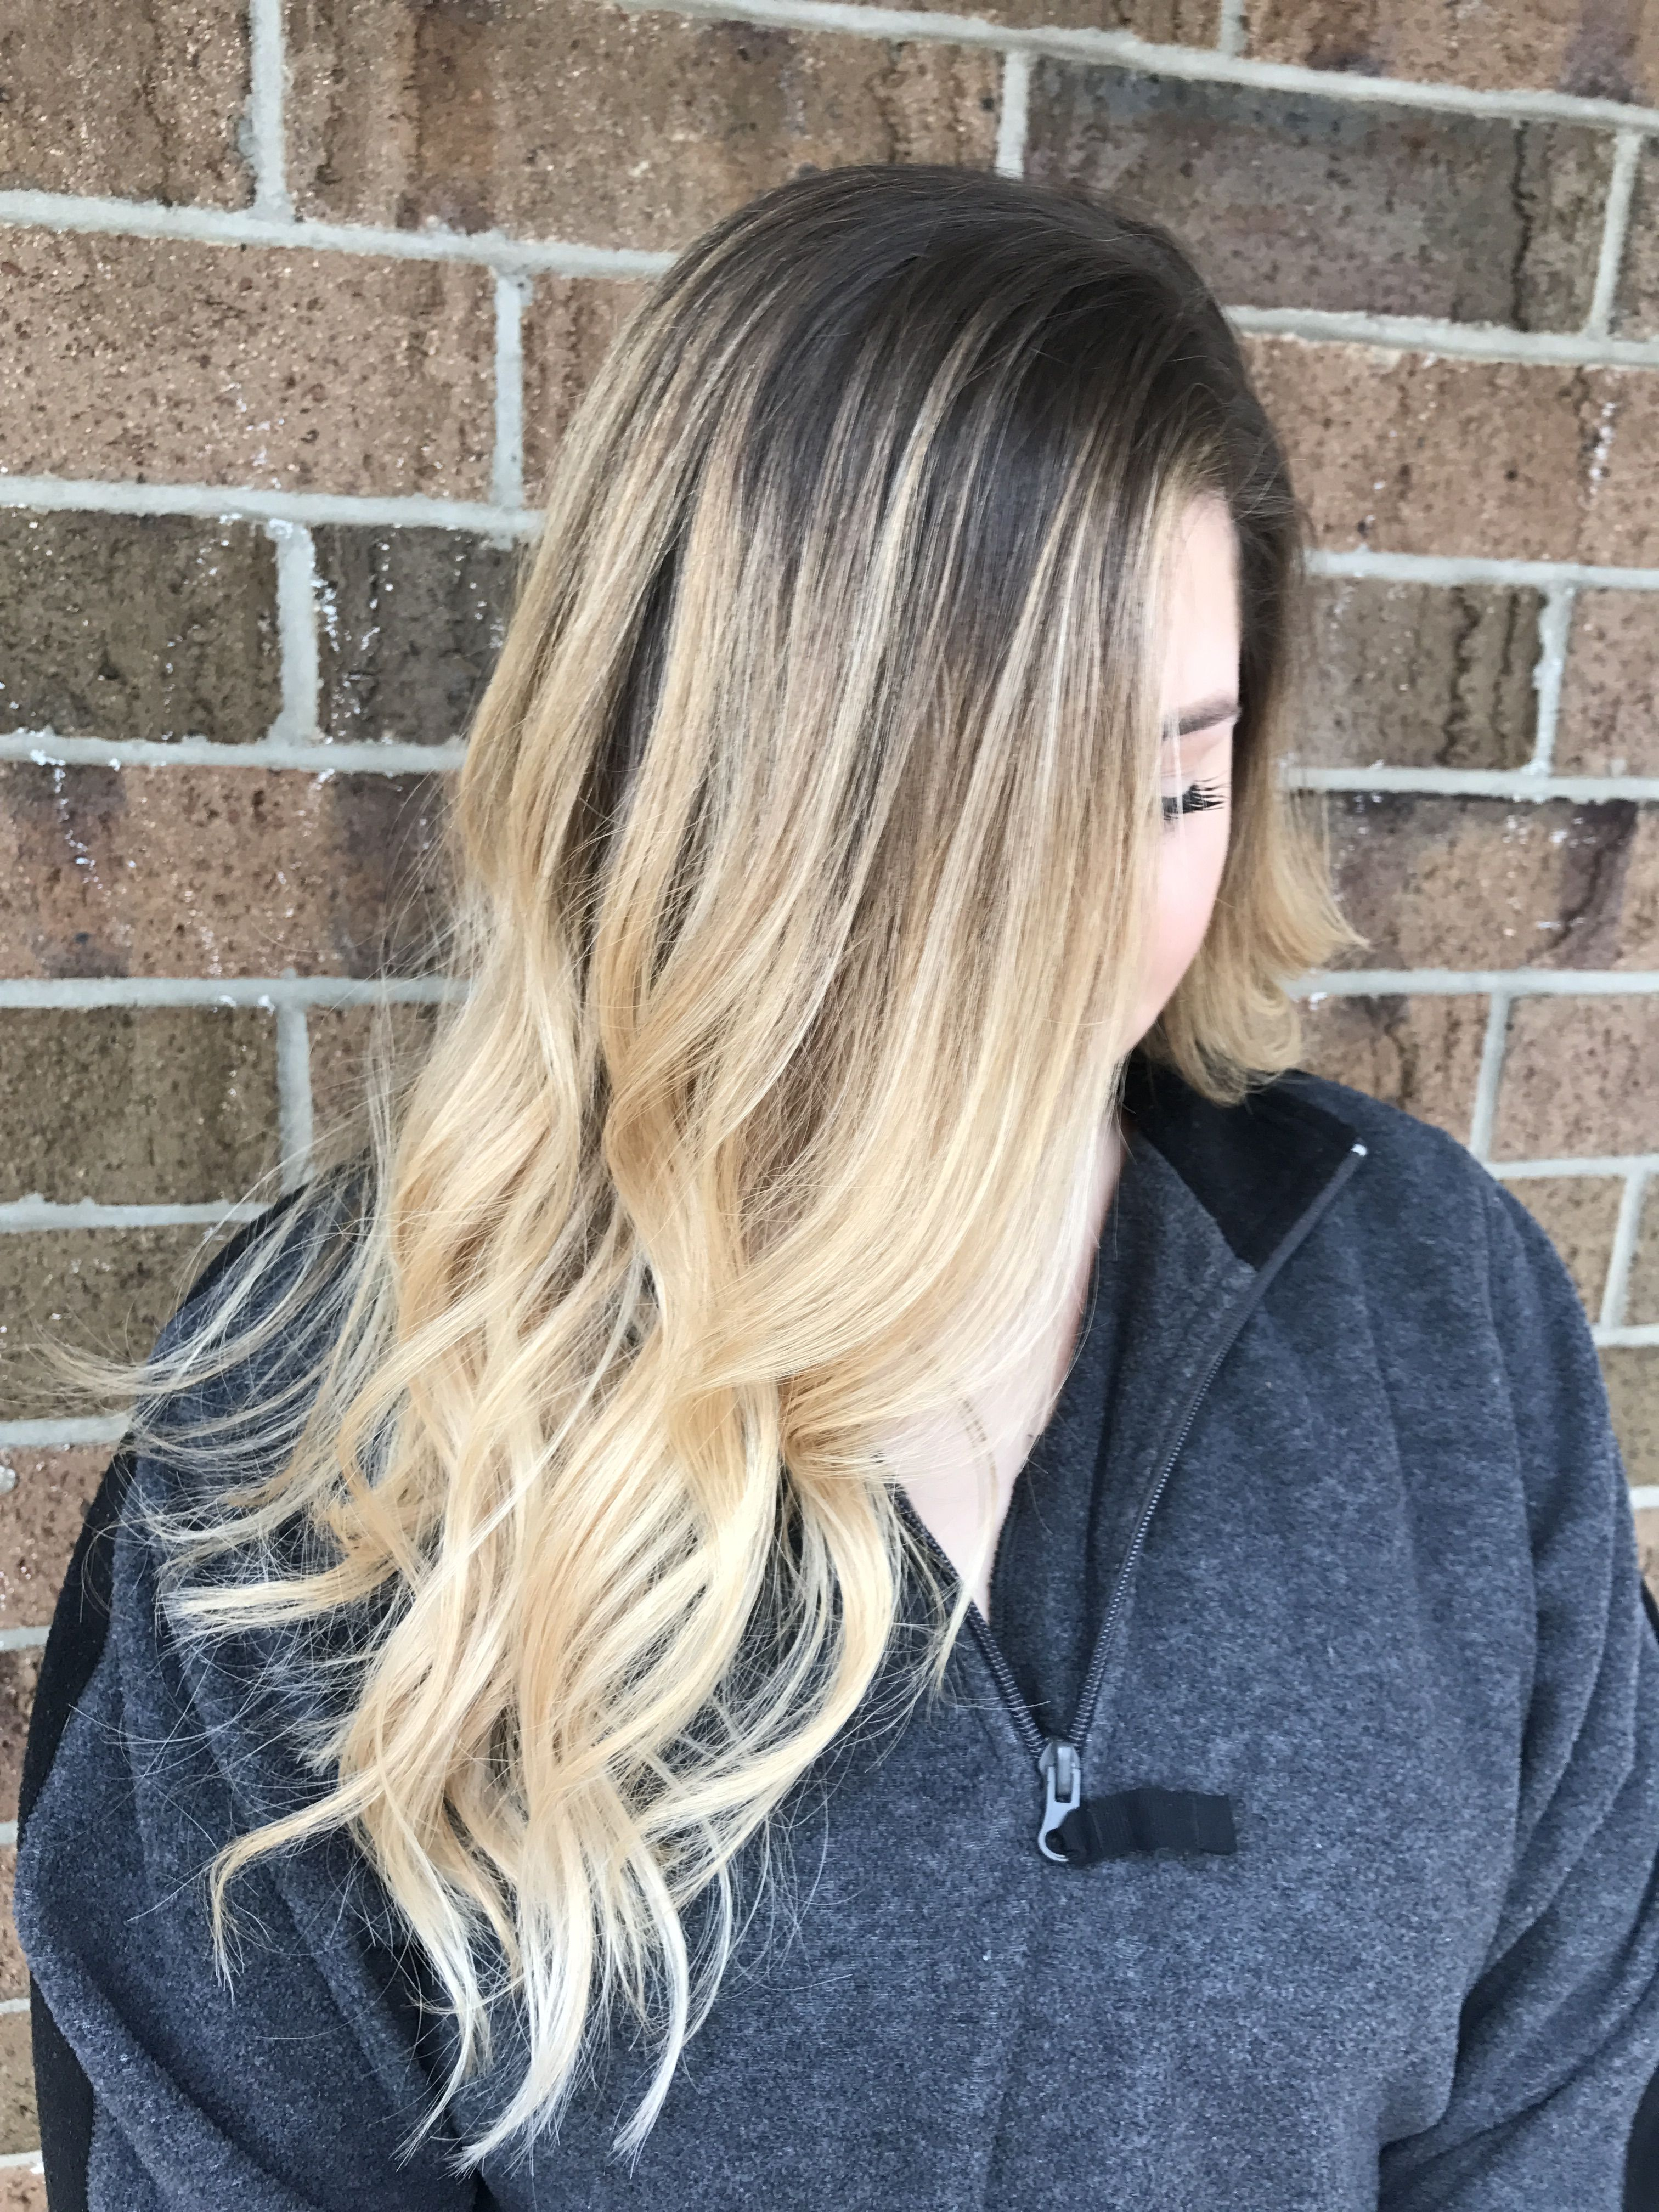 Blonde Balayage Easy Grow Out Color With Natural Root Color Blond Hair Color Balayage Rooty Ac Portfoli Blonde Balayage Hair Color Balayage Blonde Hair Color